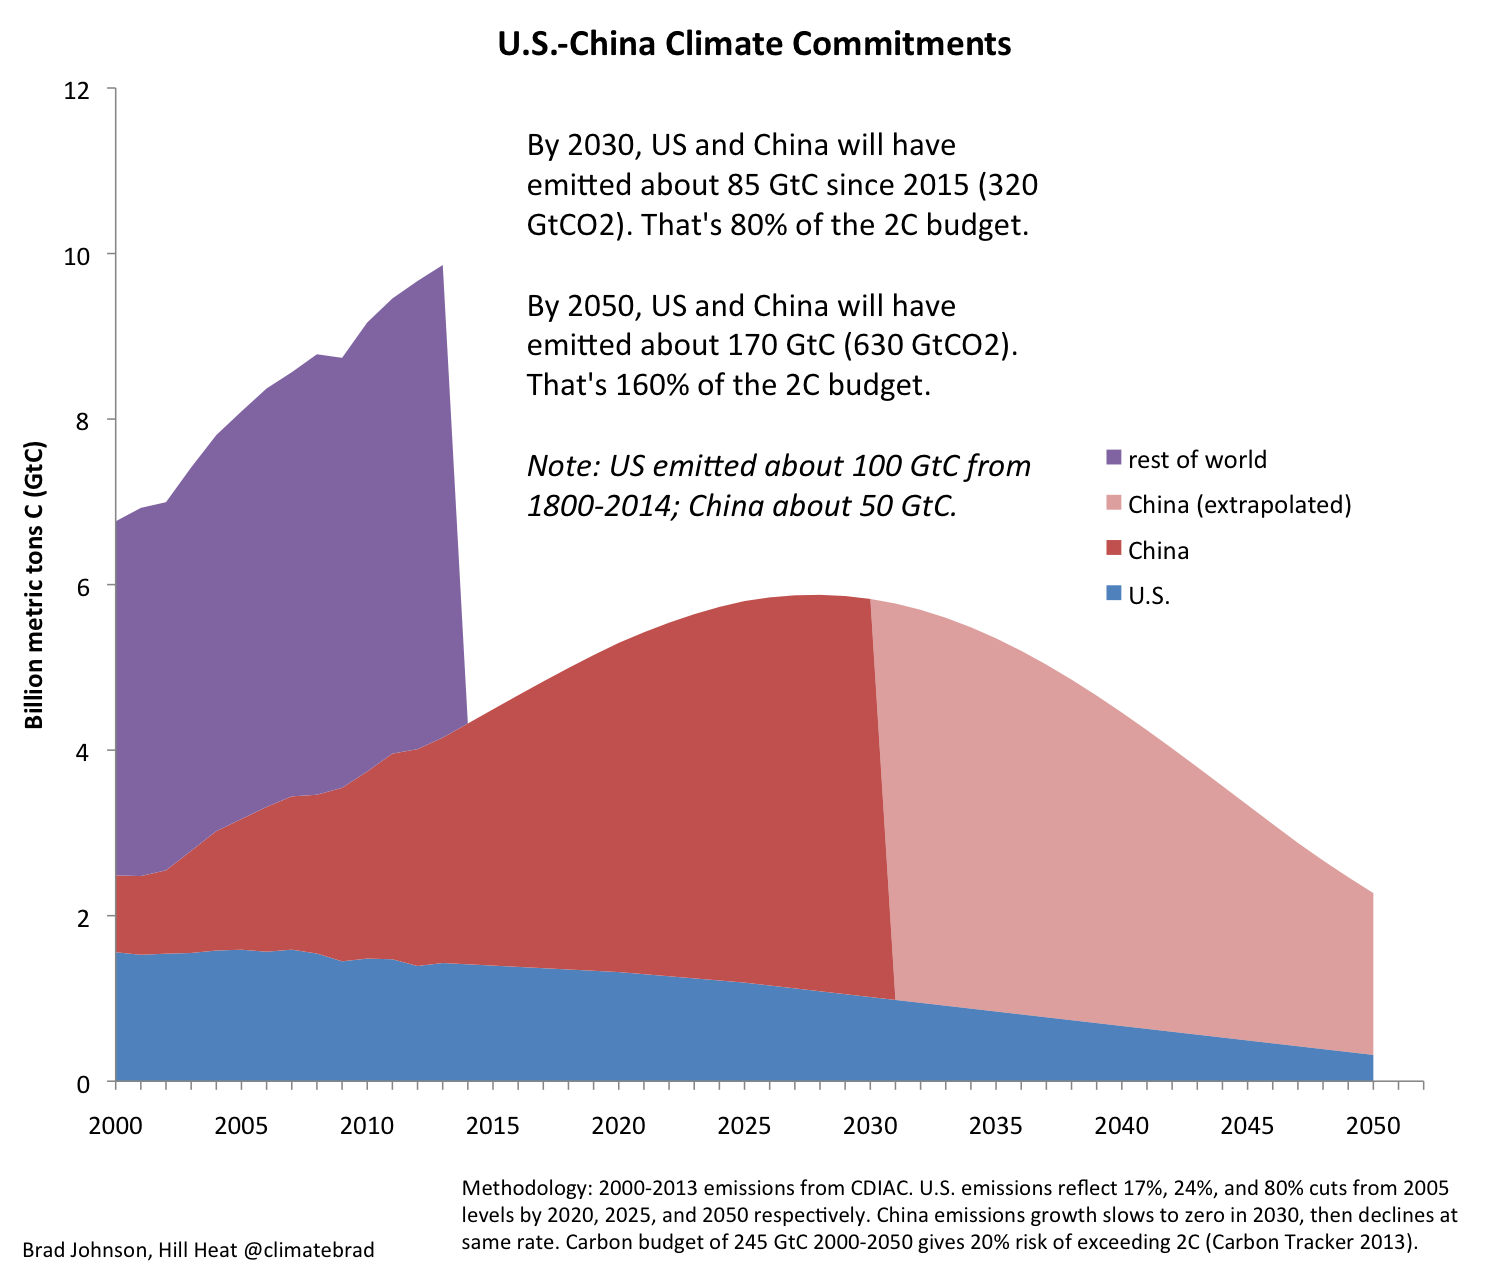 US-China Climate Commitments